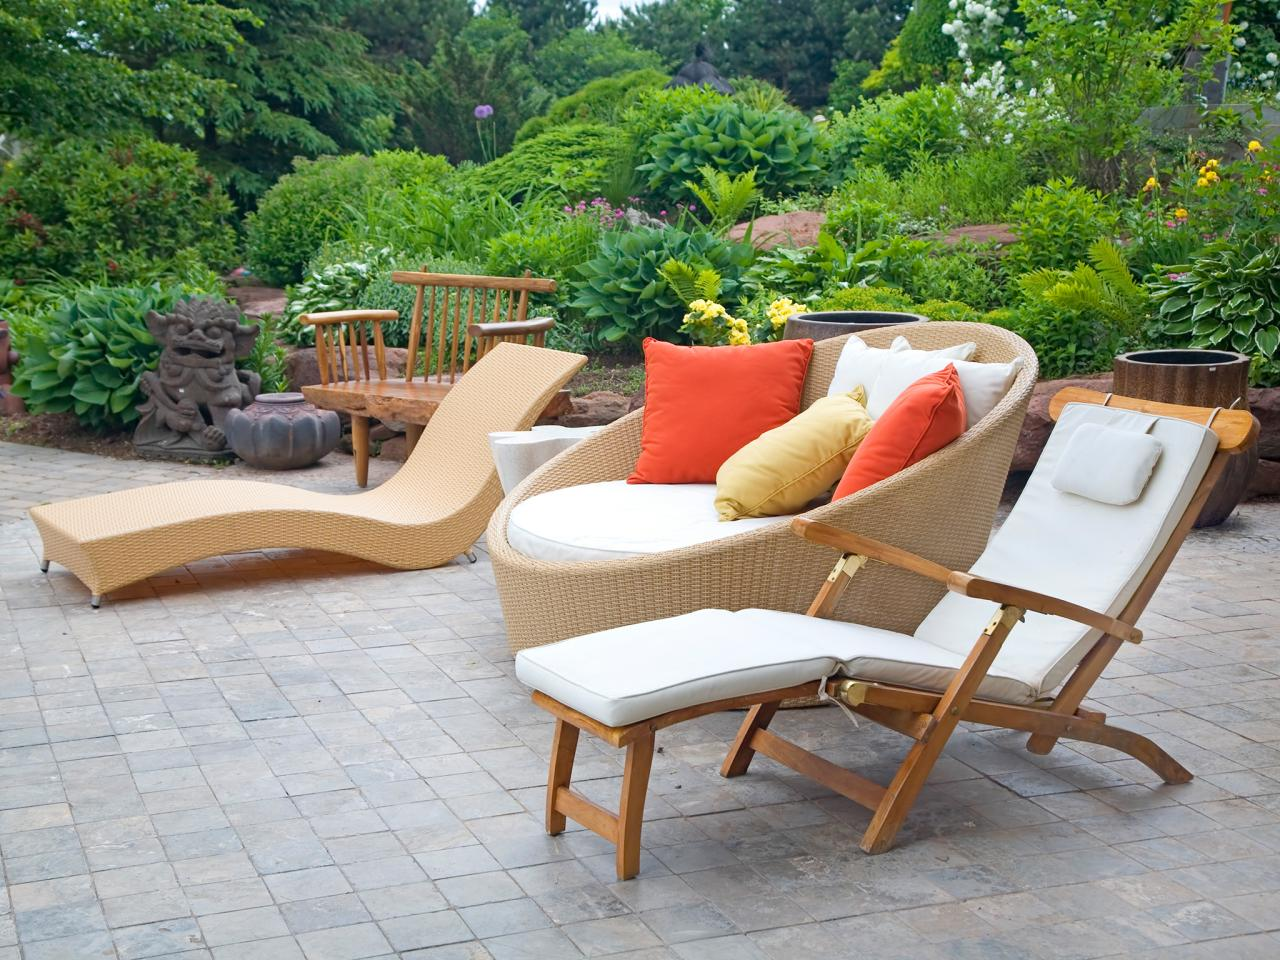 Outdoor Chaise Lounges at IDUS Furniture Store